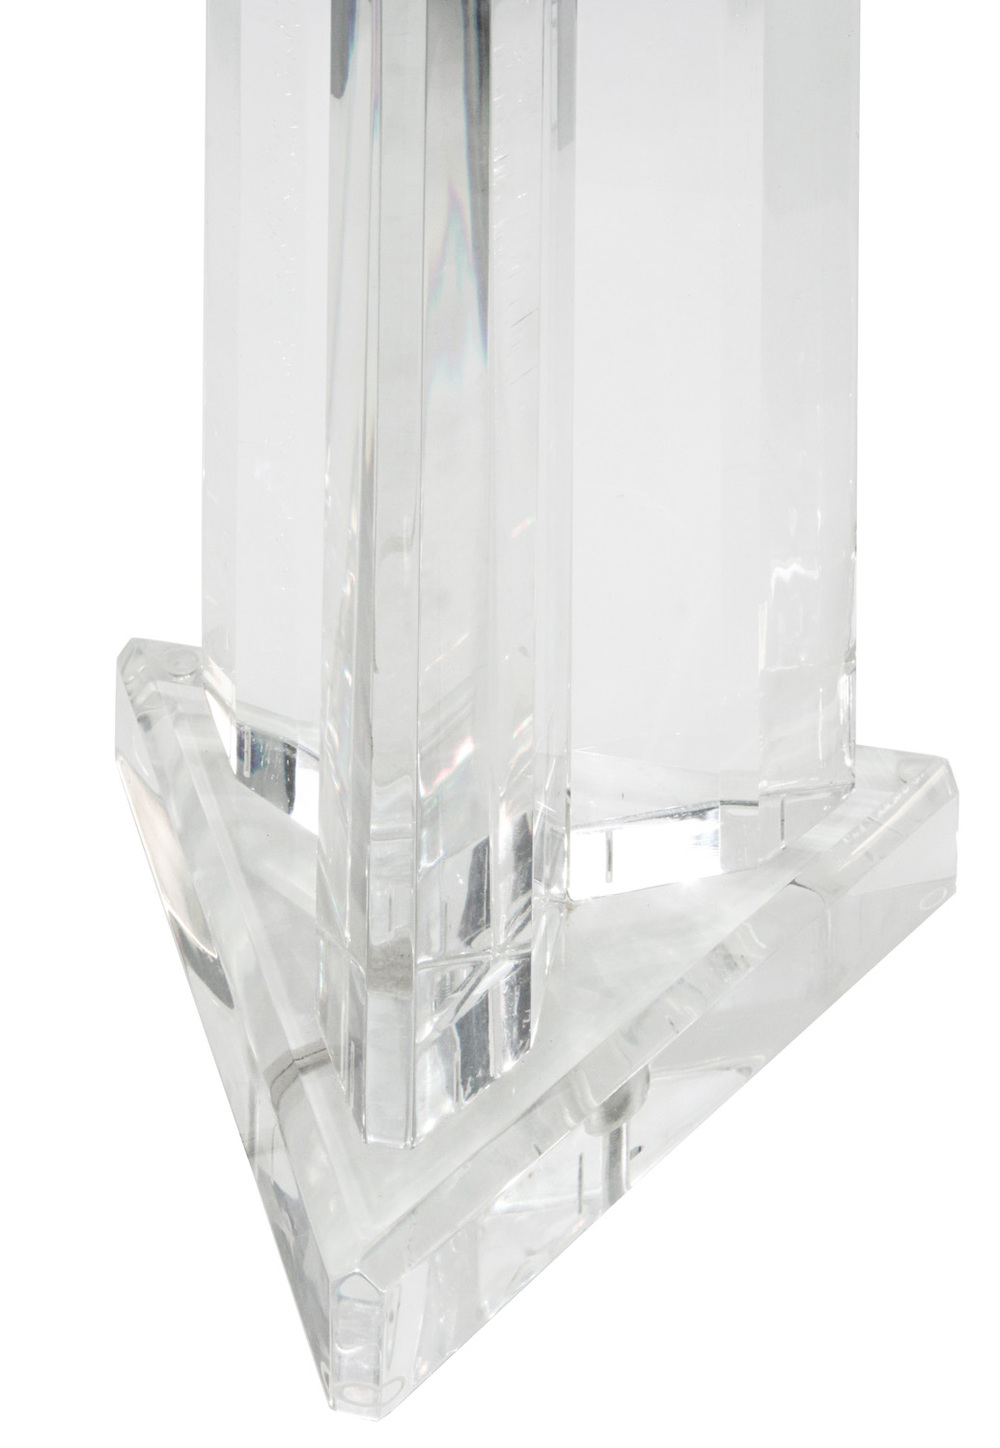 Prismatique 45 3edge lucite block tablelamp209 detail4 hires.jpg